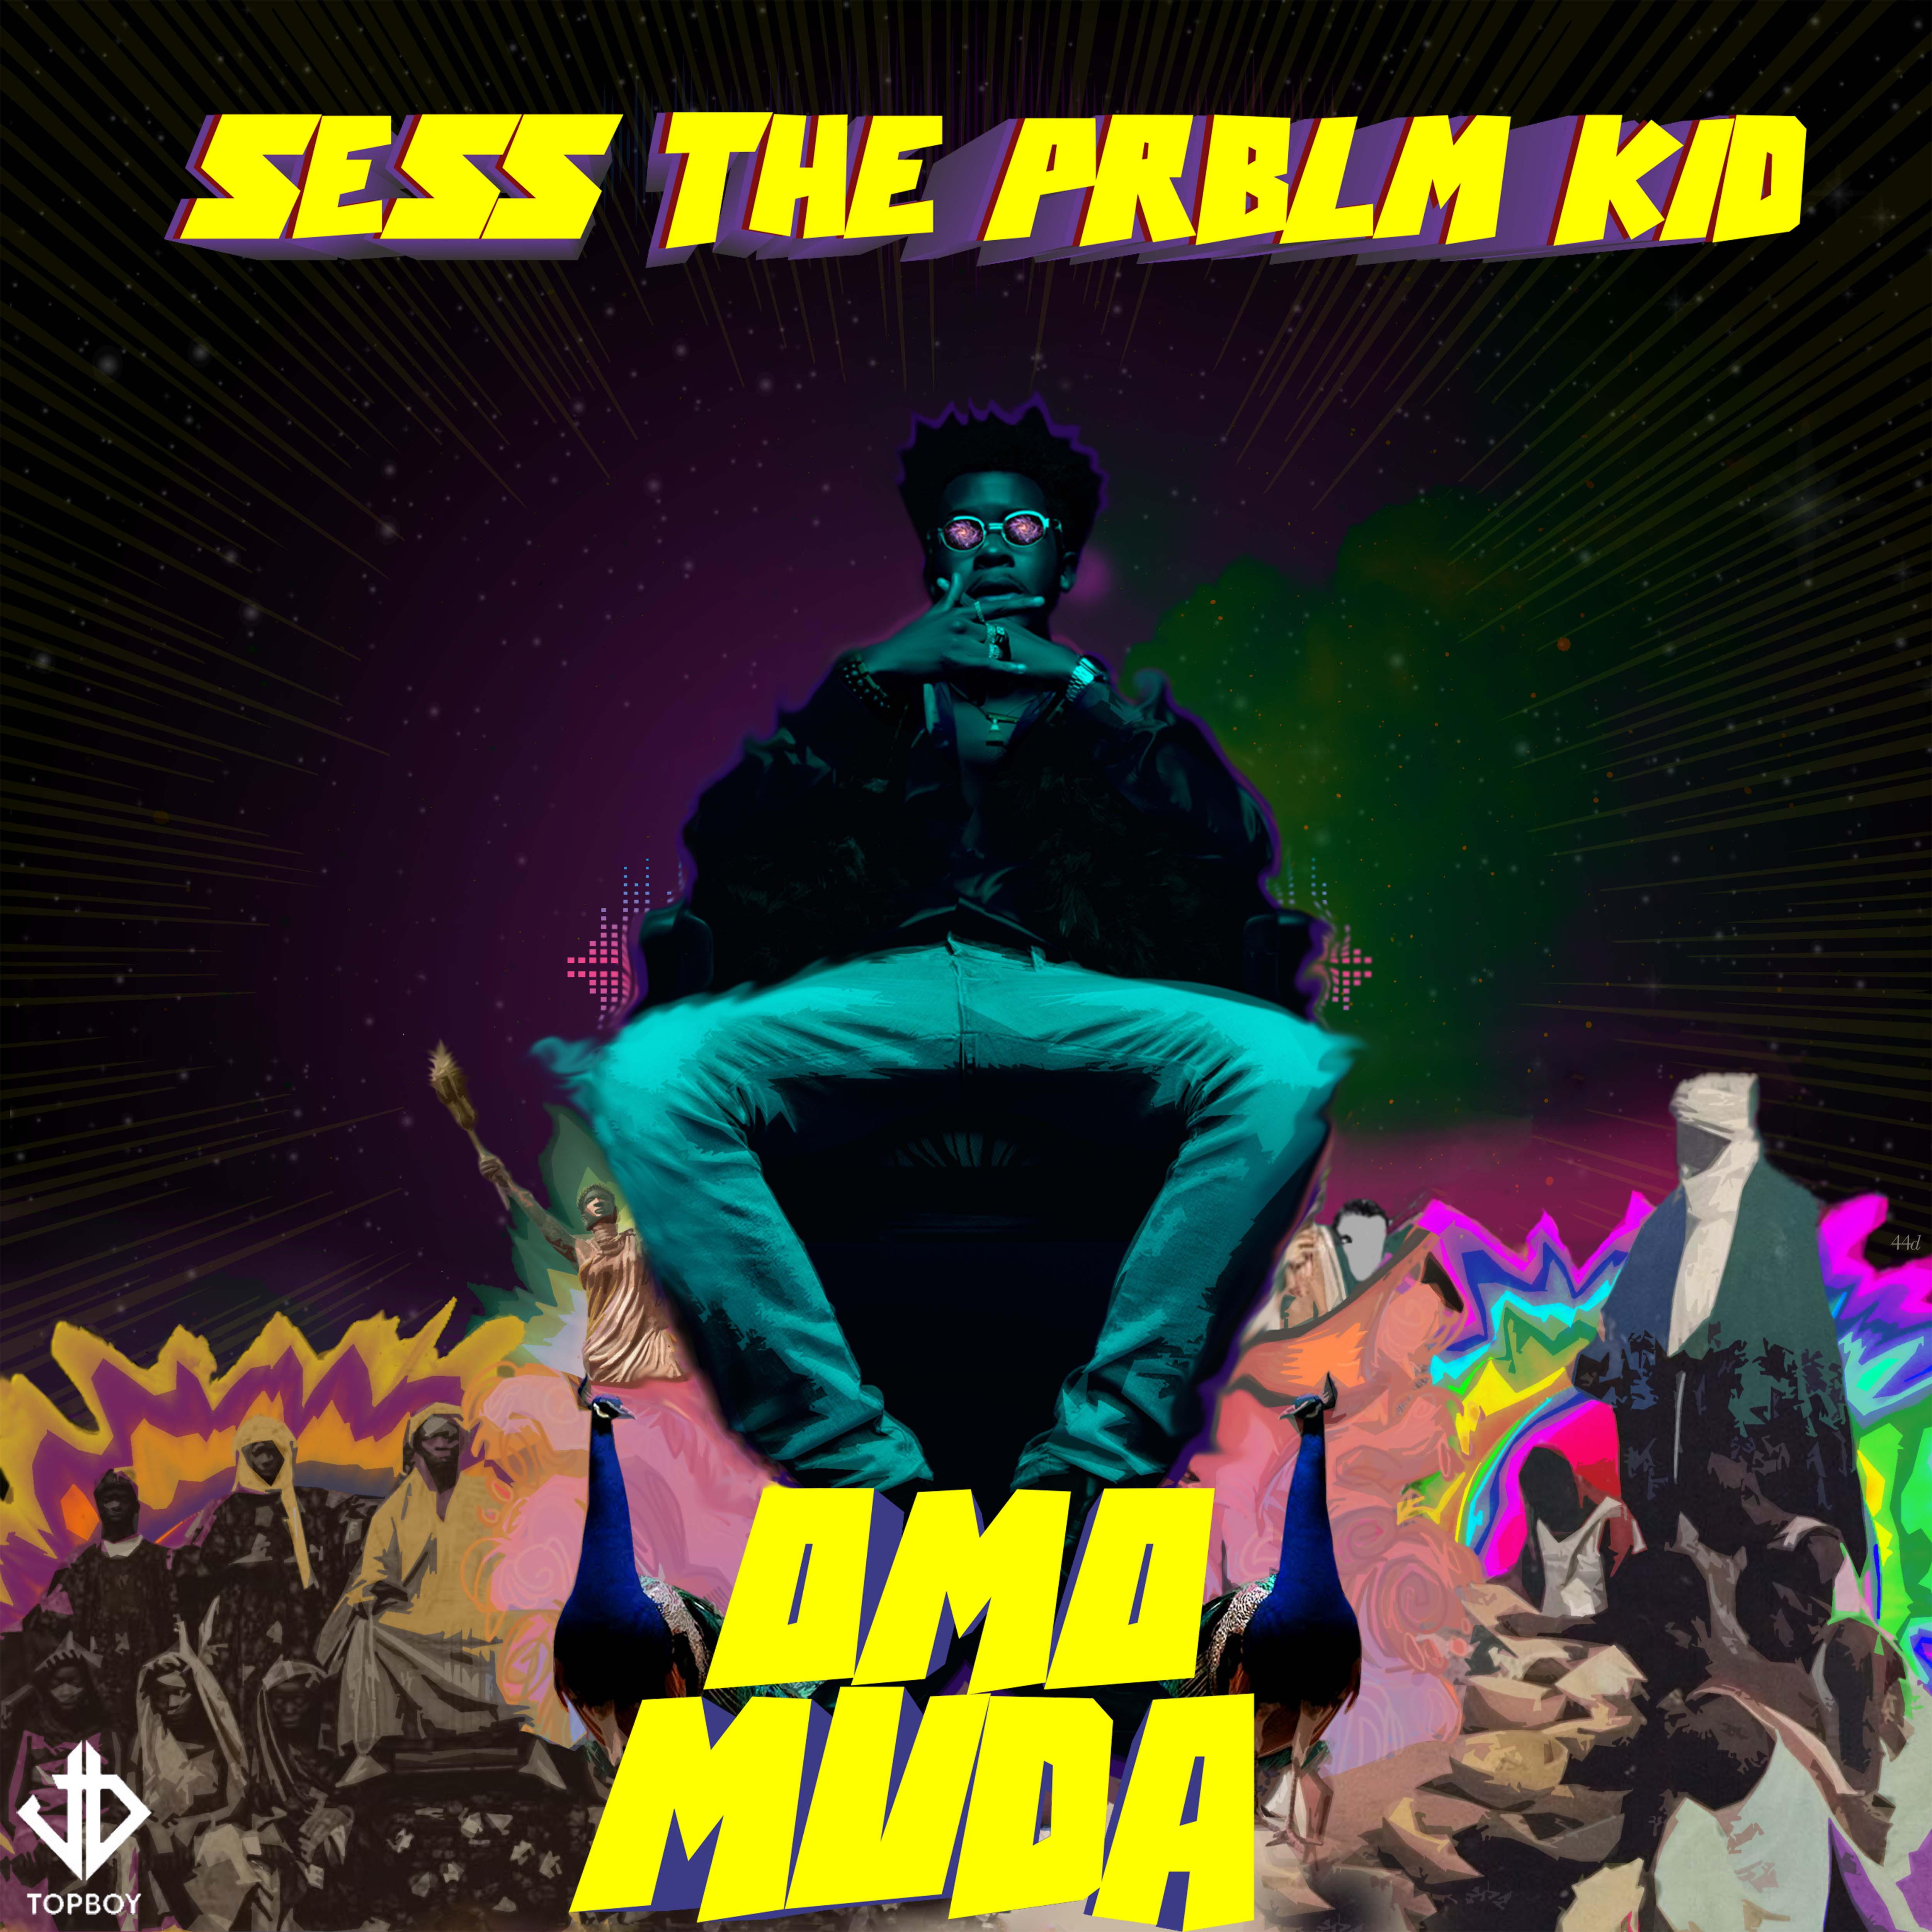 Sess Reveals His Album Art and Tracklist for Omo Muda